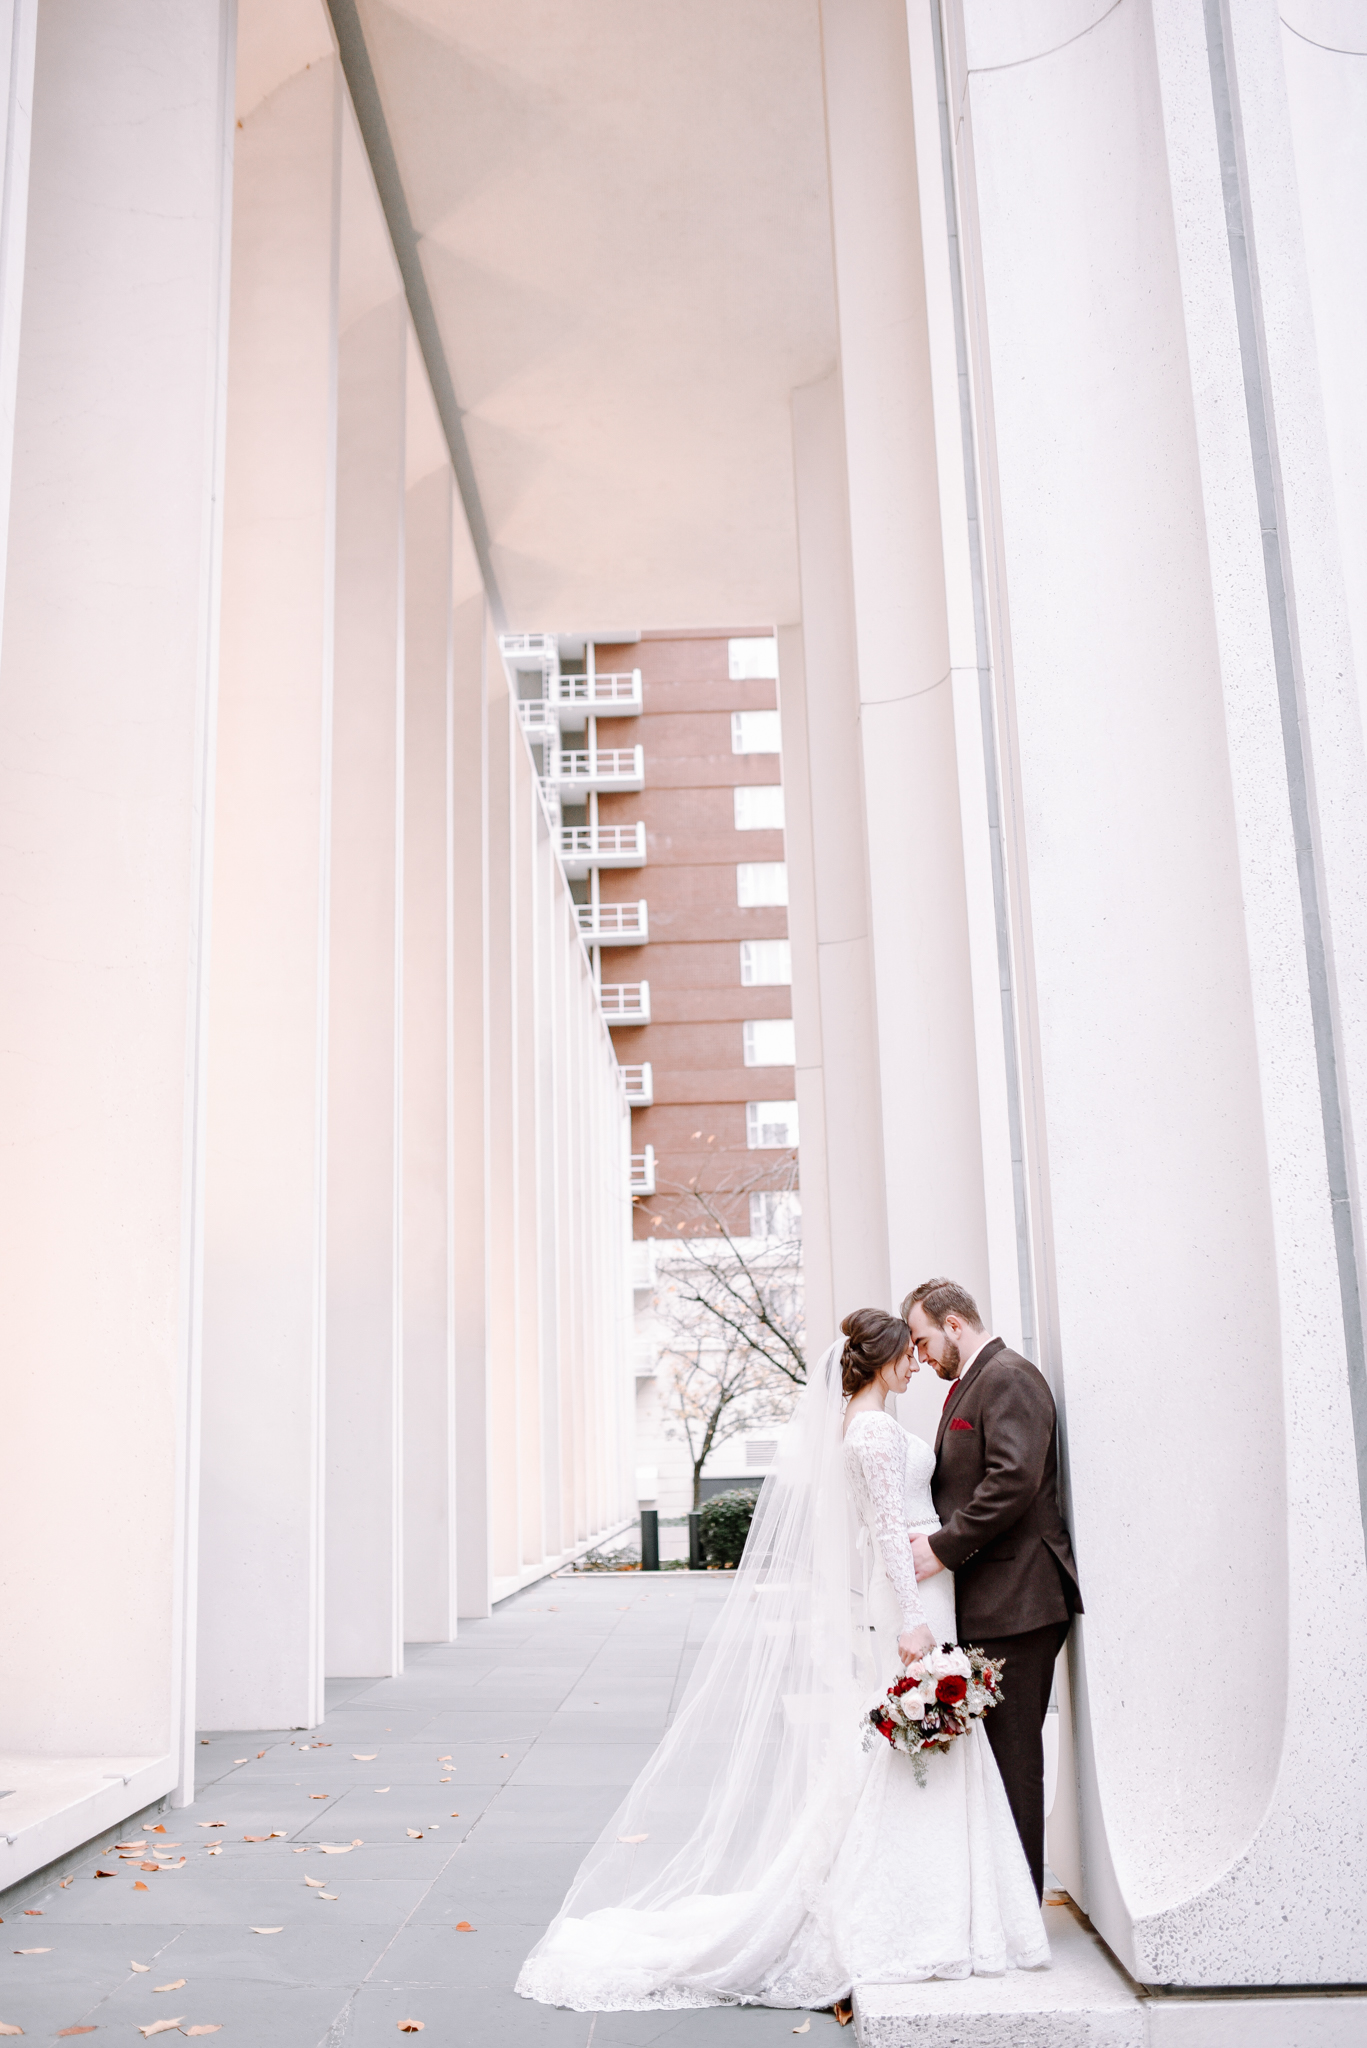 Manu and Laura - Portland Wedding Photographer - 80.jpg